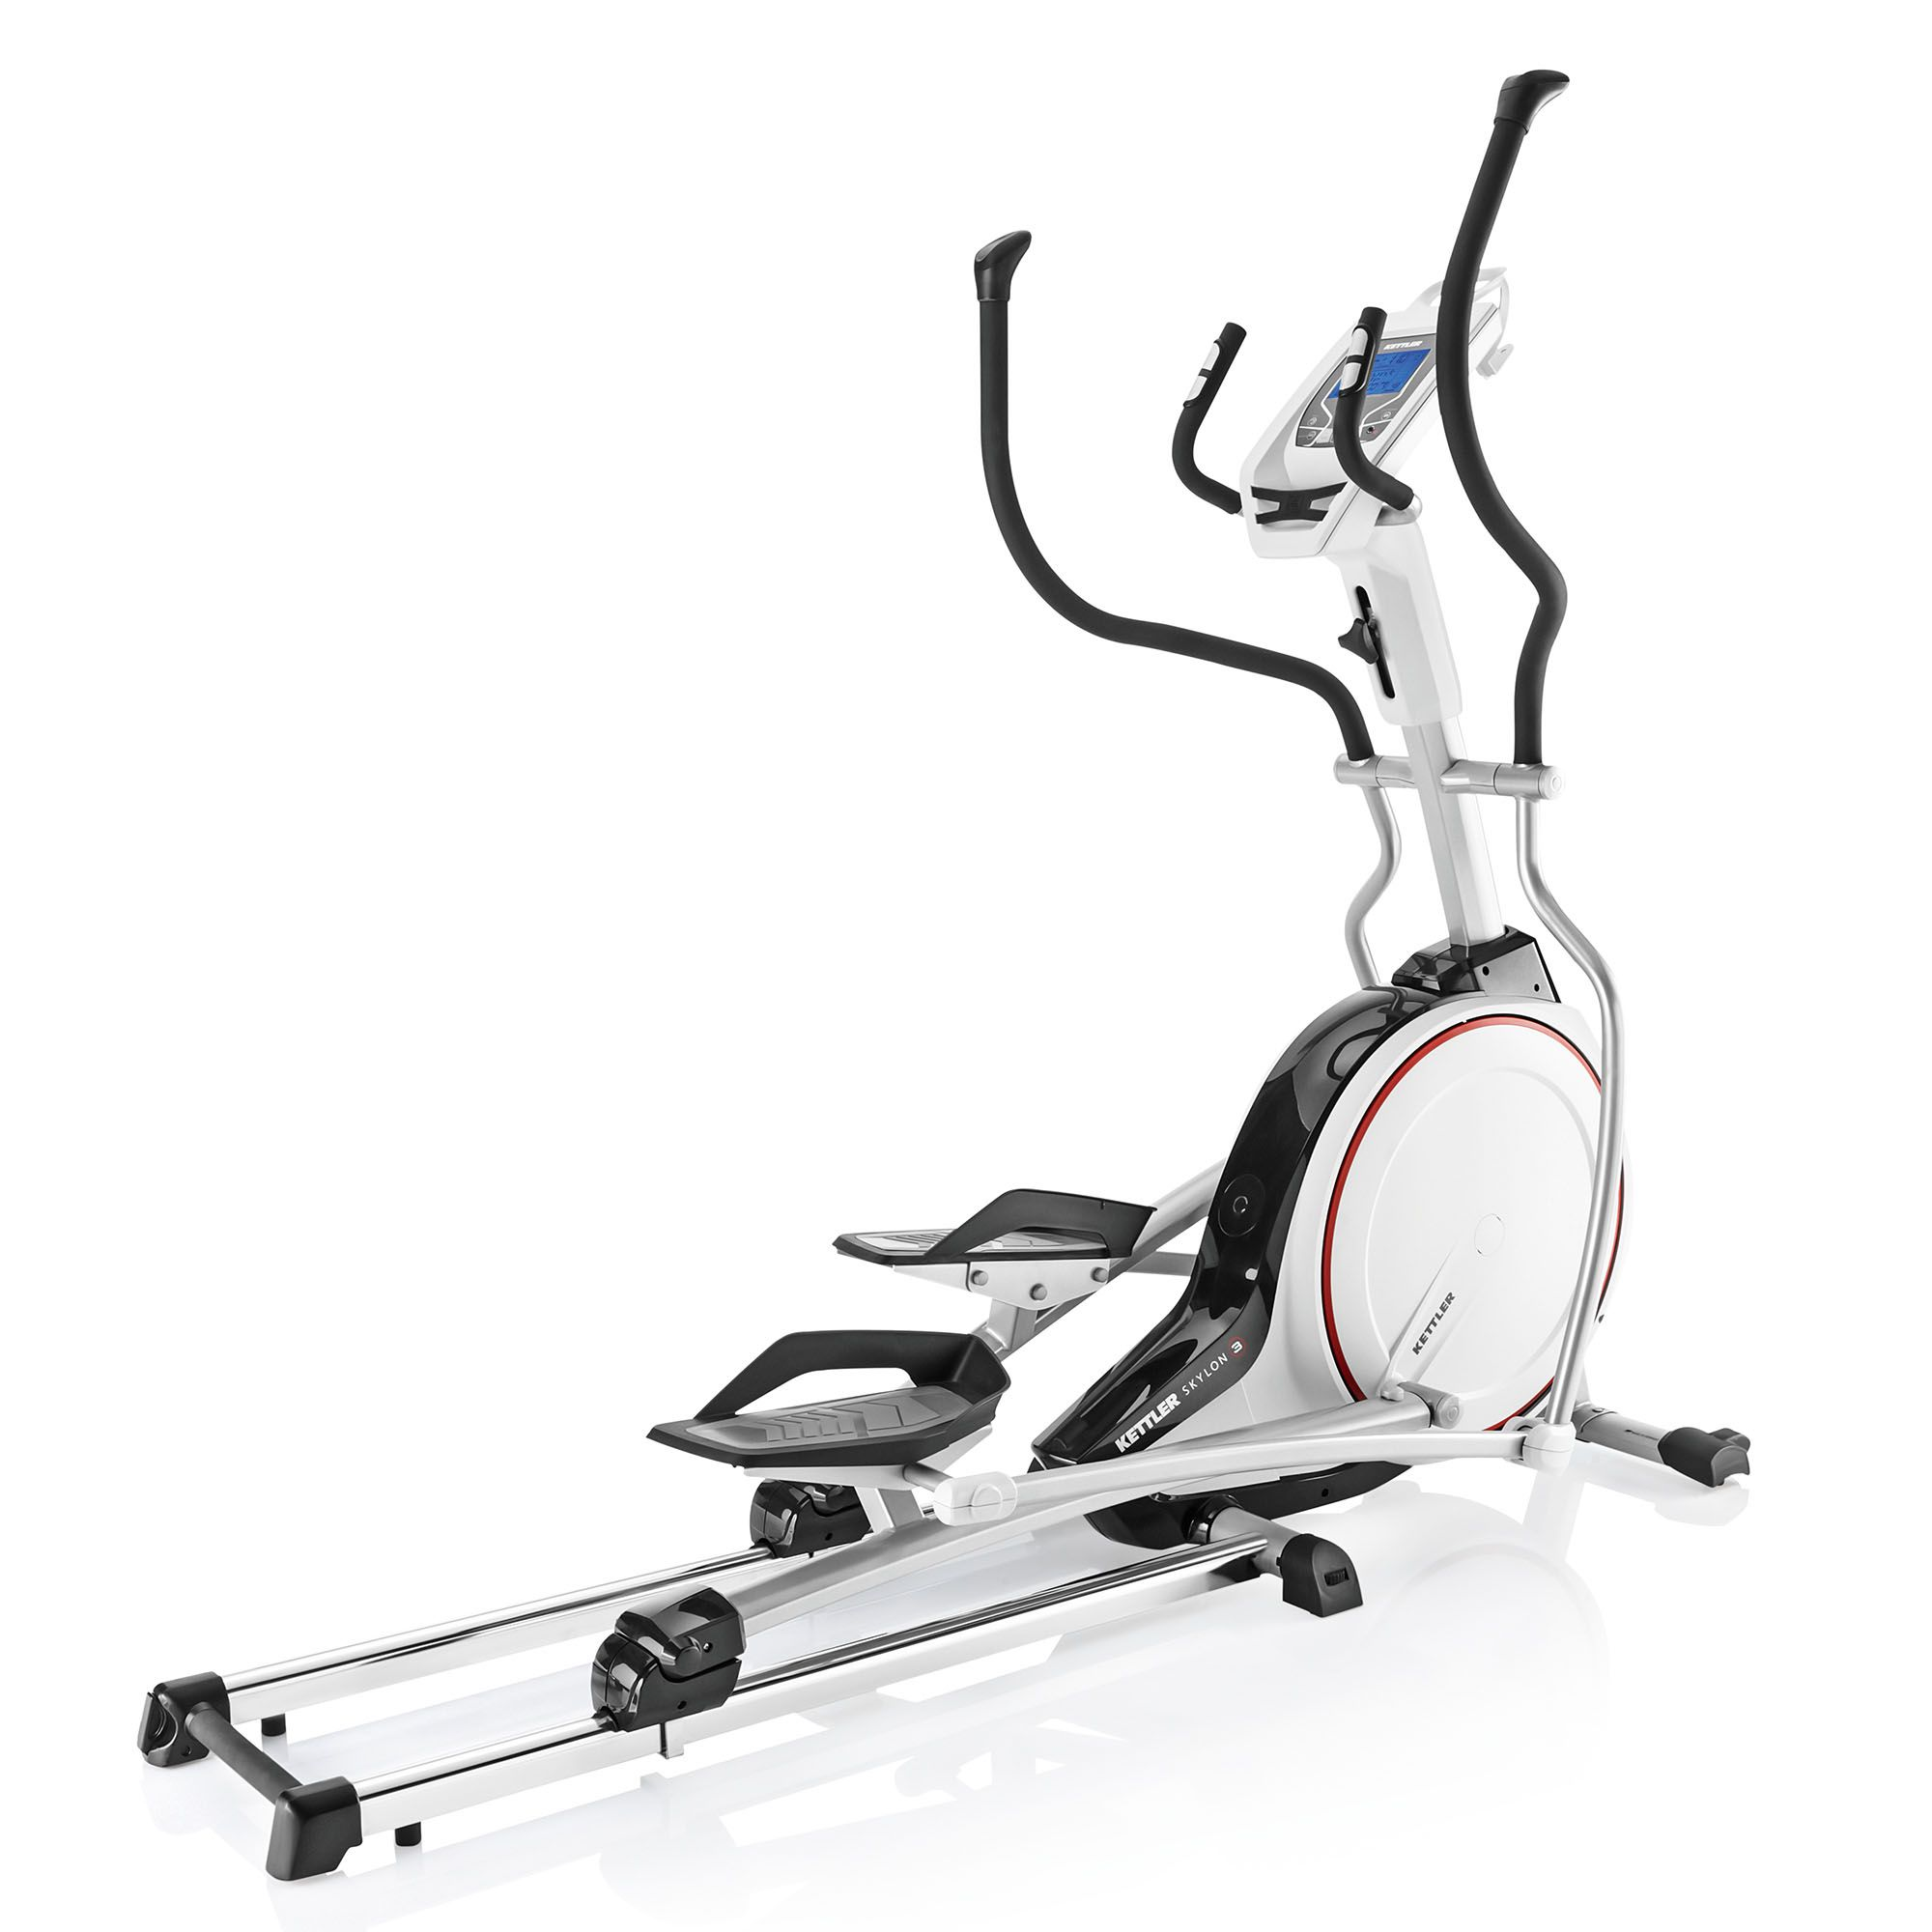 Kettler Fitness Kettler Skylon 3 Folding Elliptical Cross Trainer